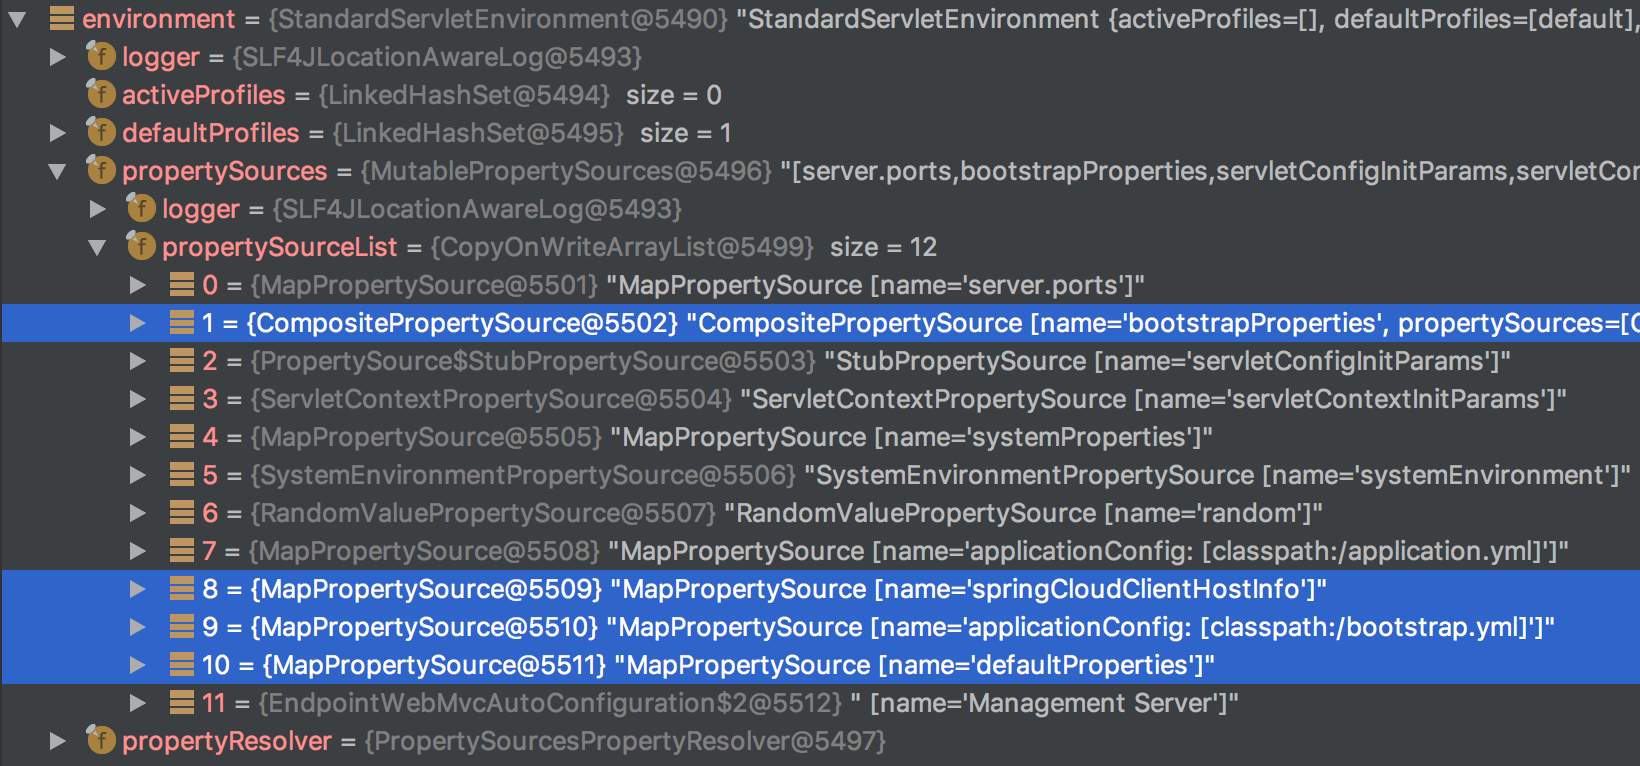 Environment Snapshot for a Spring Cloud Config Application